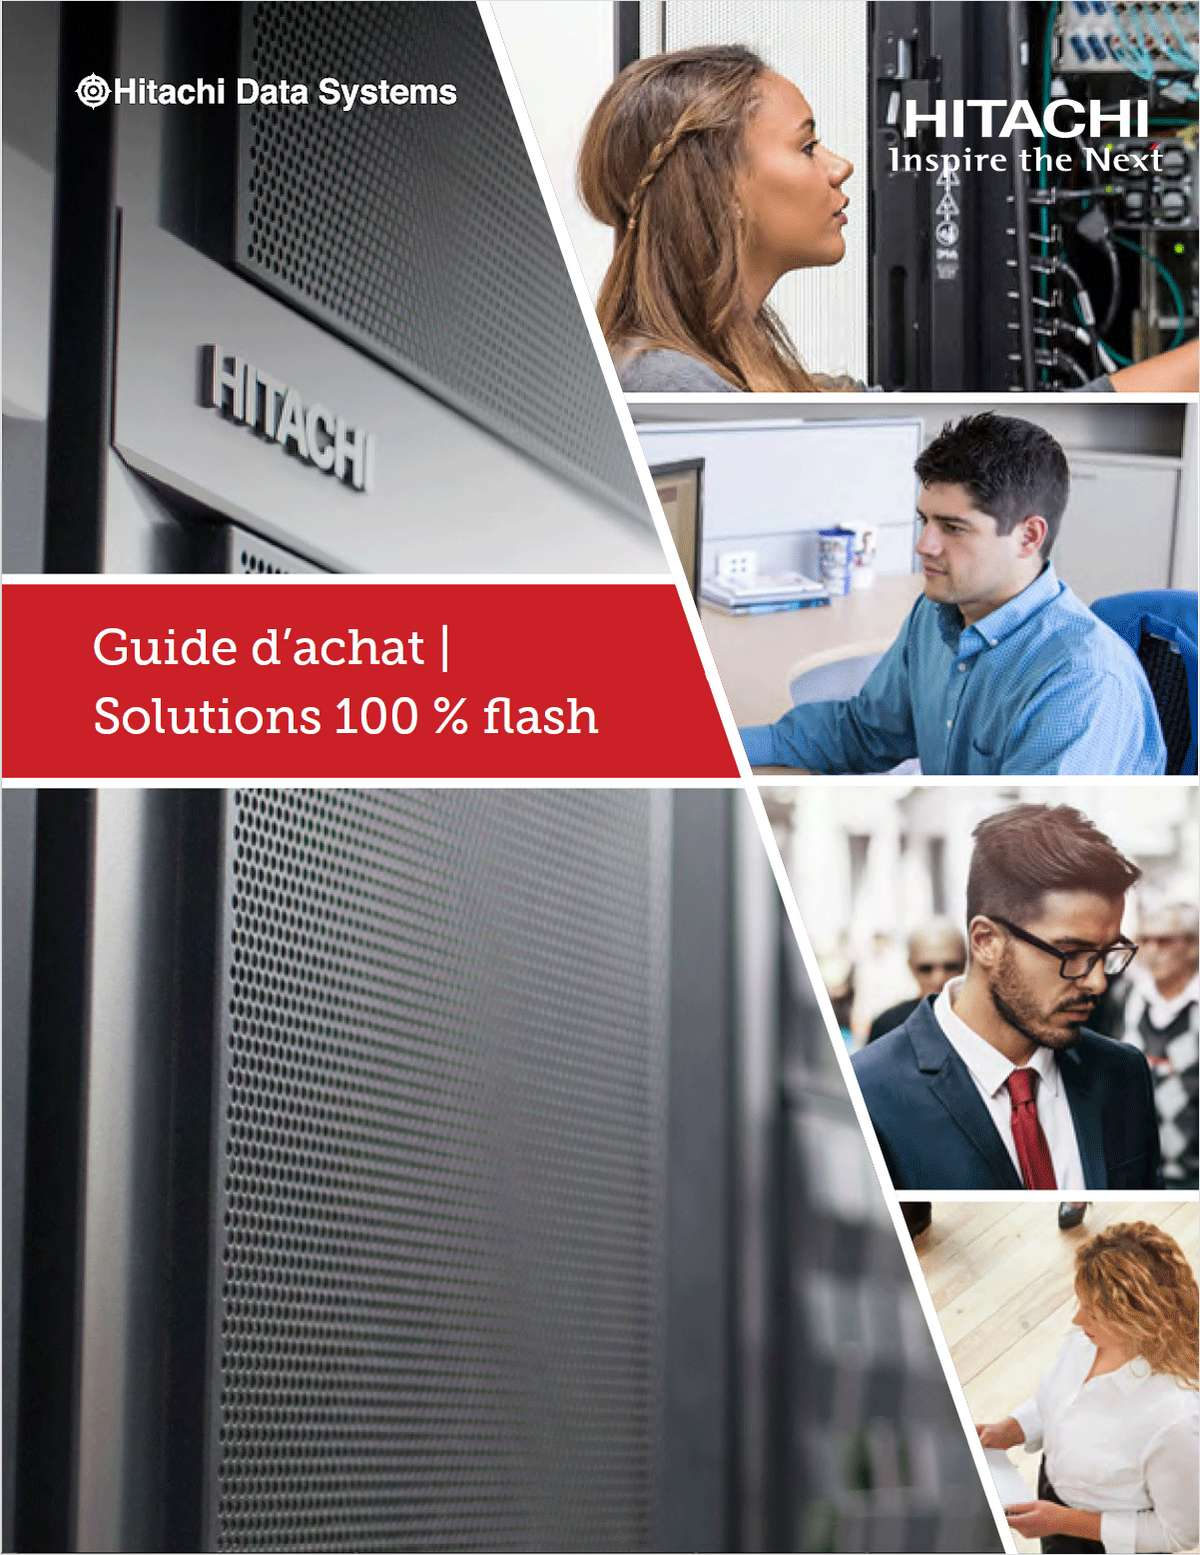 Guide d'achat - Solutions 100 % flash